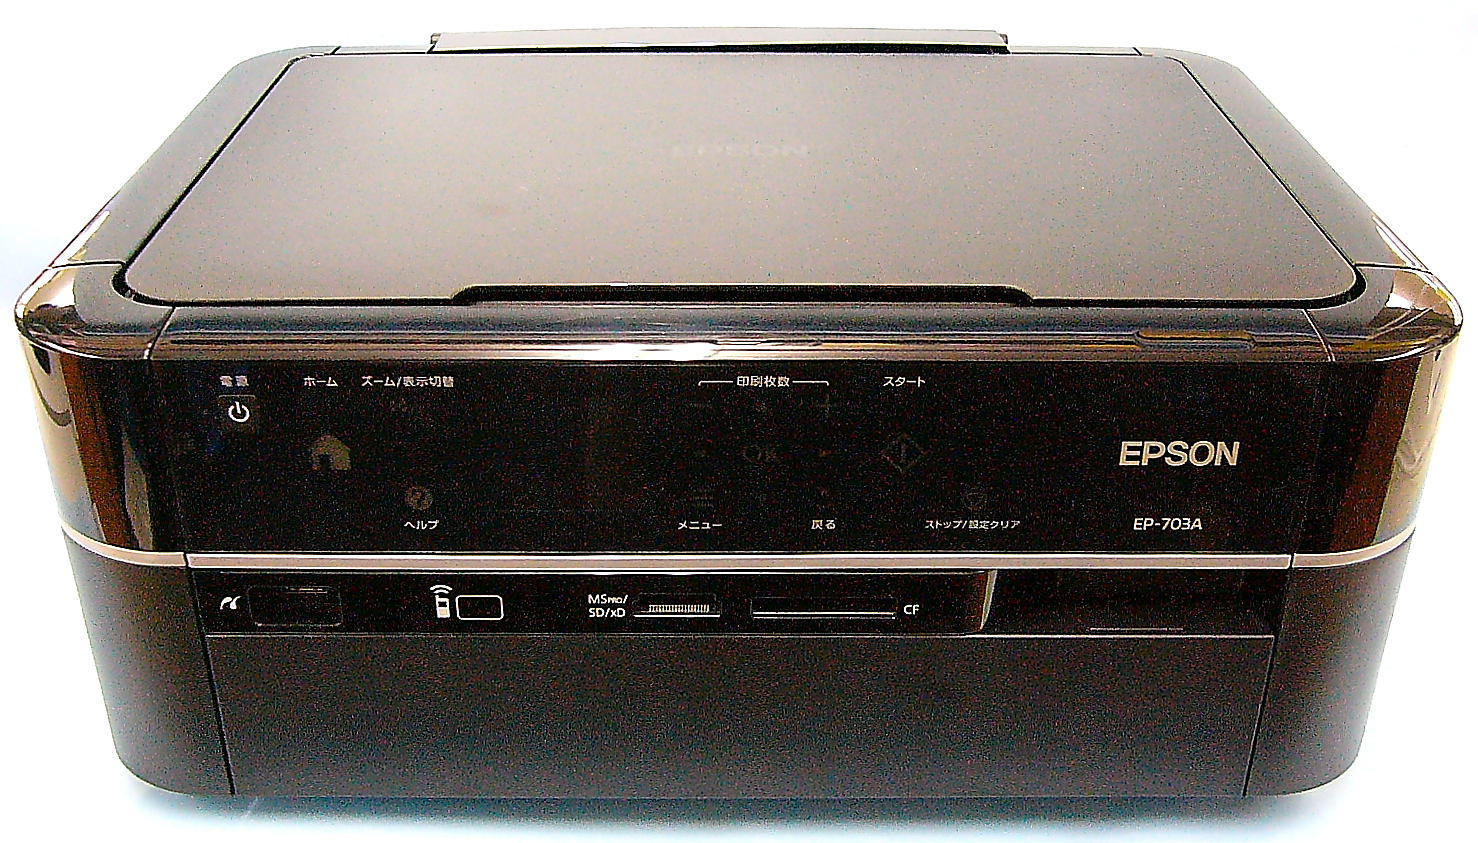 EPSON プリンタ EP-703A